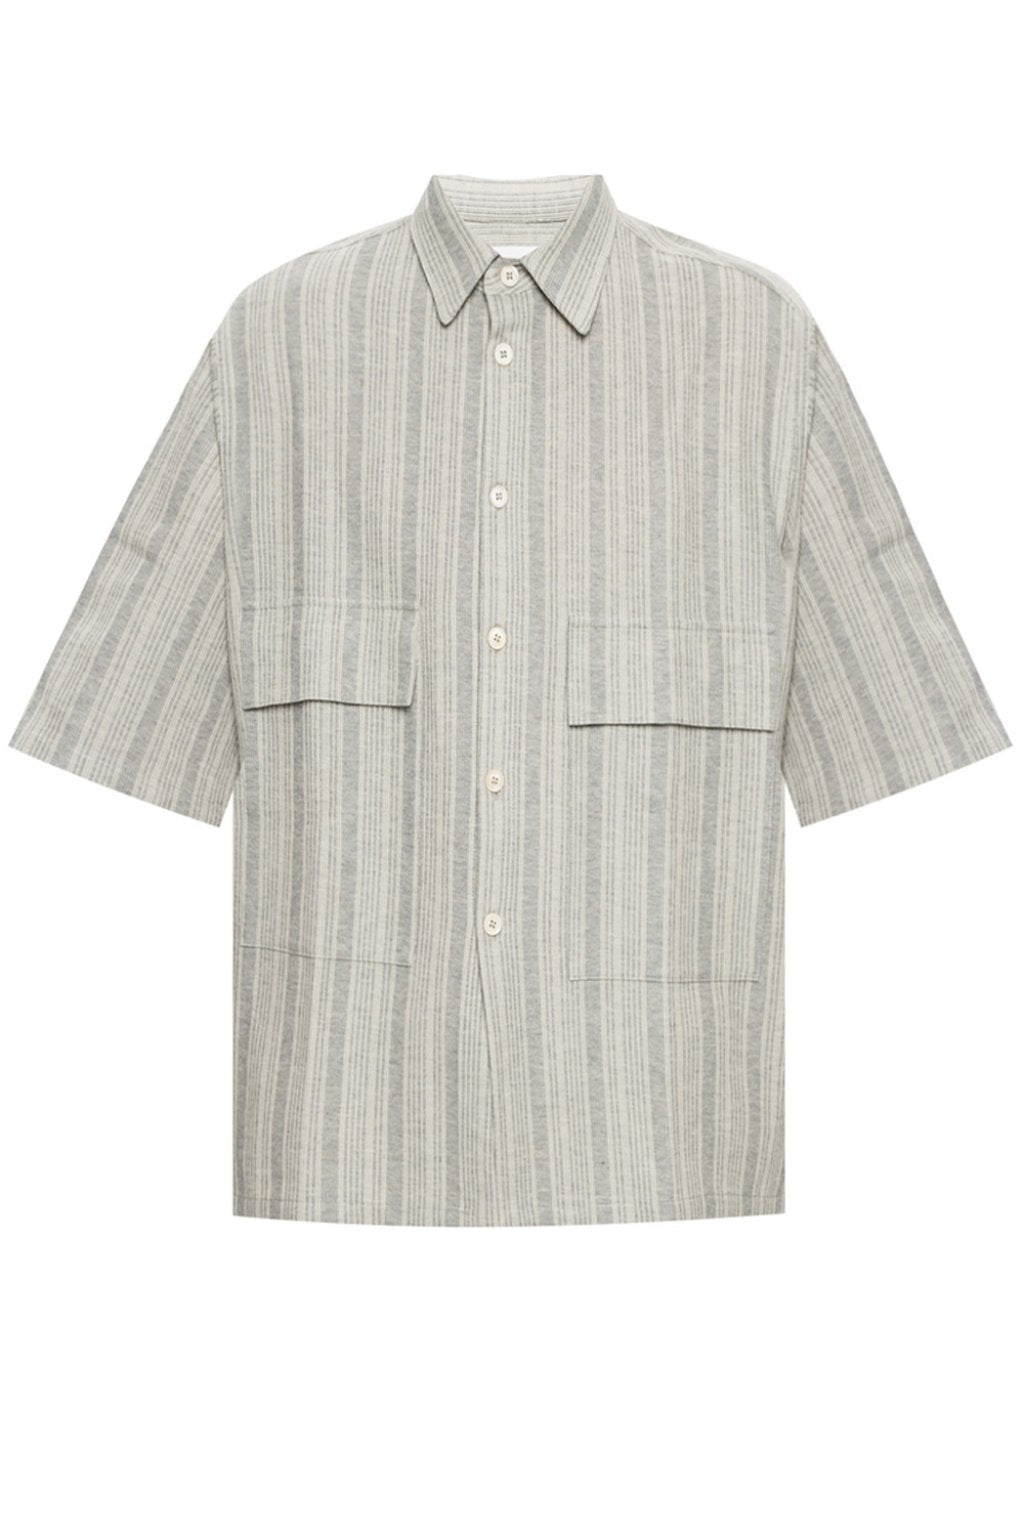 Men's Shirt SS - Open Grey